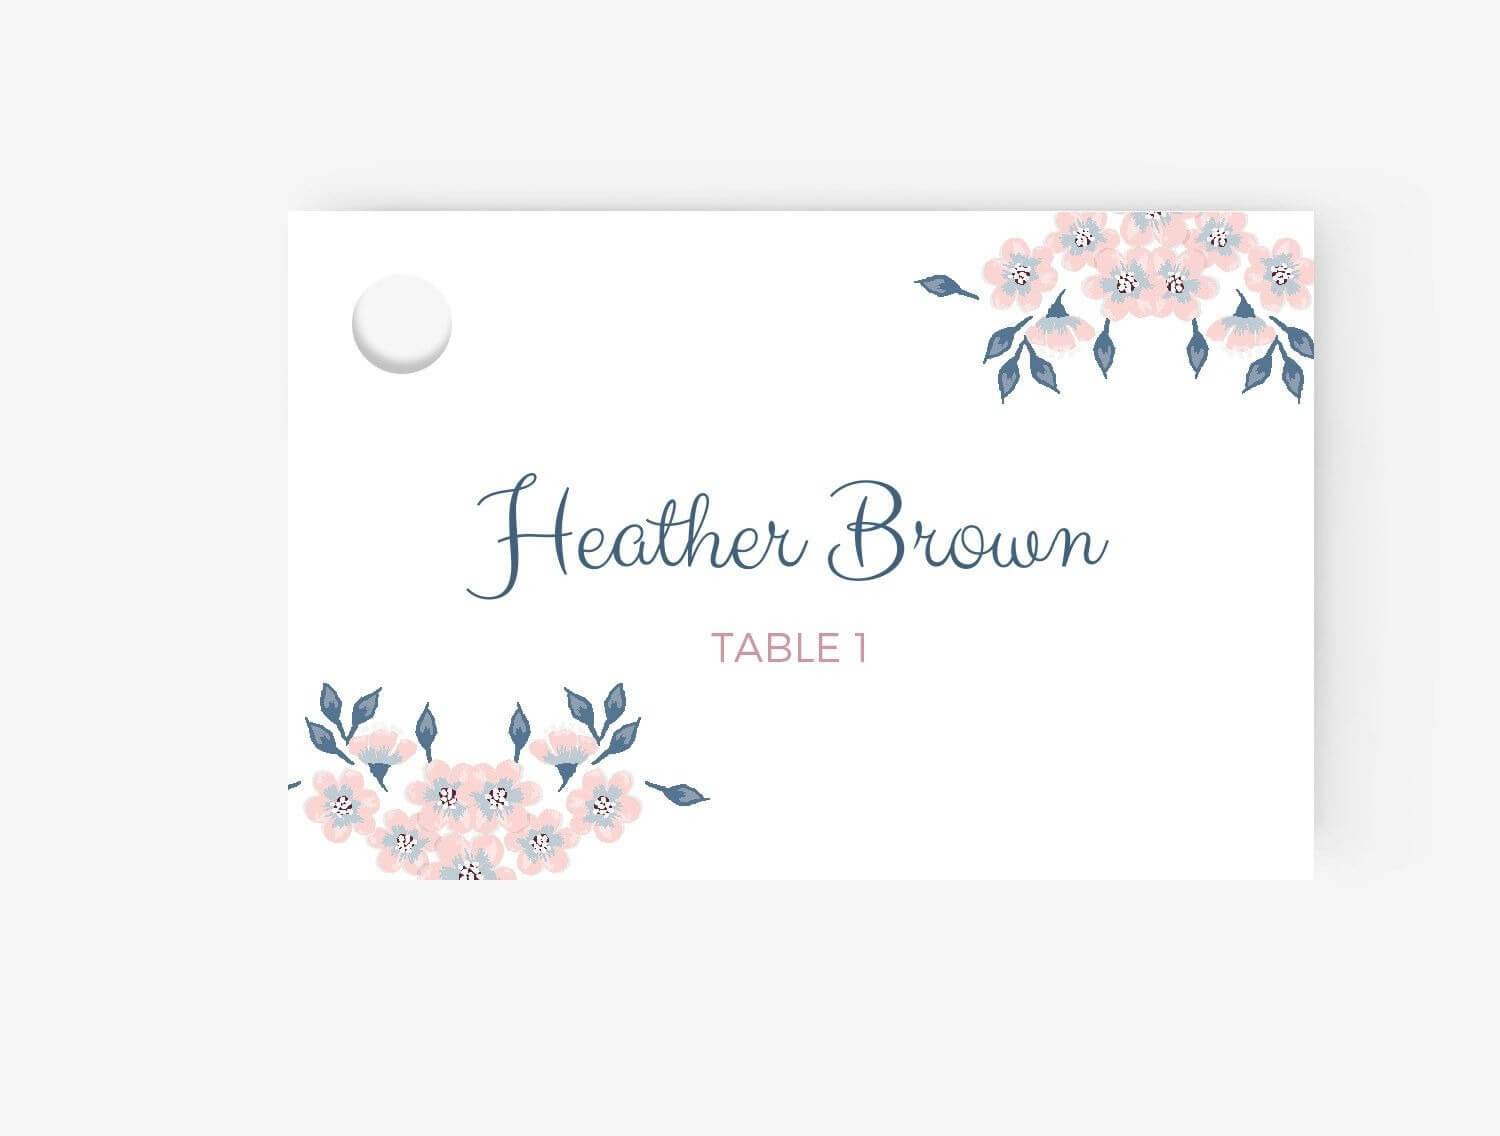 005 Free Place Card Template Ideas Cards Excellent Name For Place Card Template 6 Per Sheet